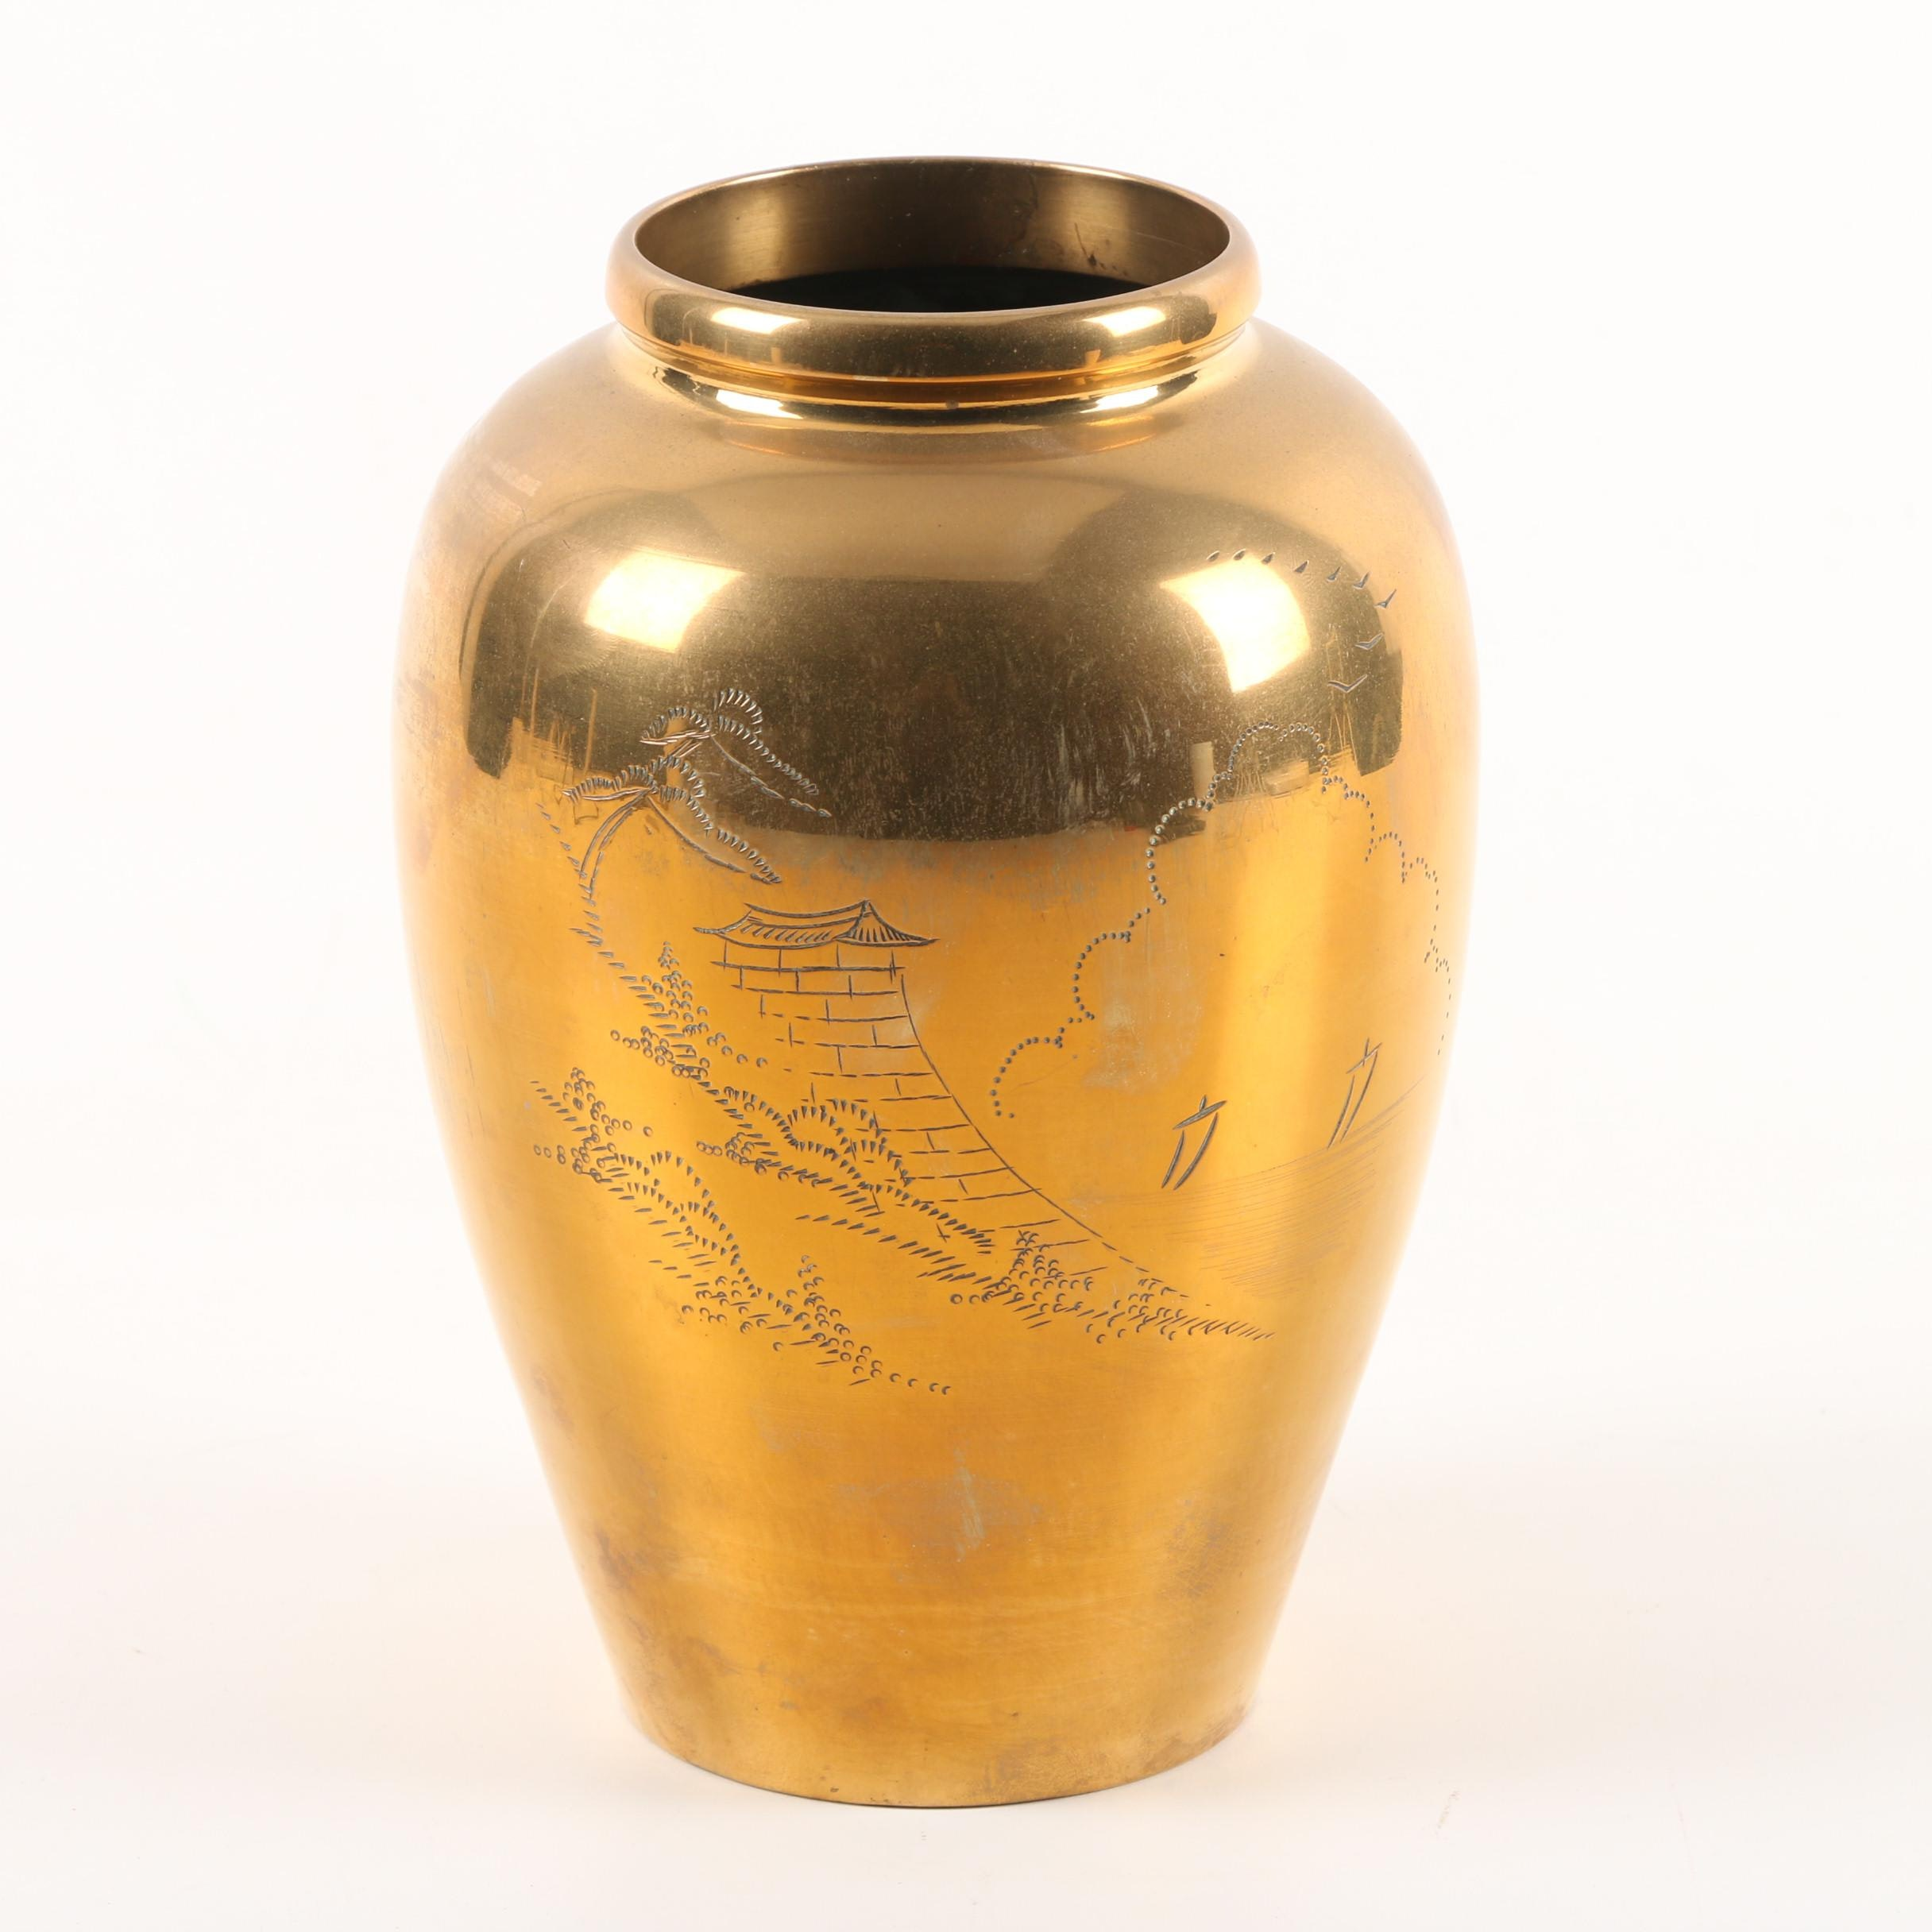 Vintage East Asian Gold-Toned Metal Vase